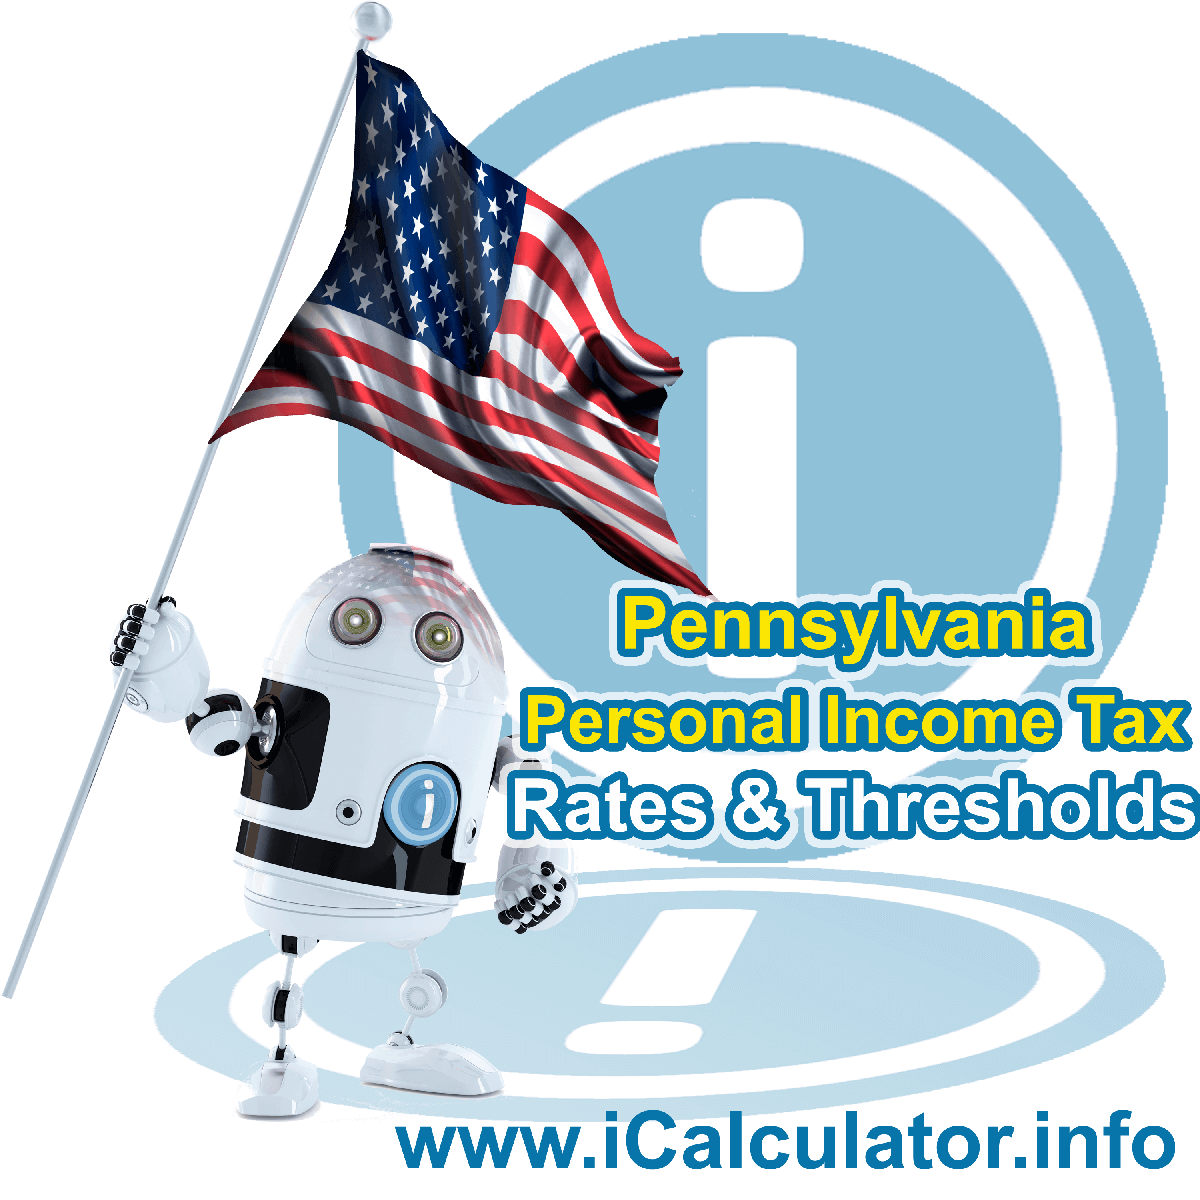 Pennsylvania State Tax Tables 2018. This image displays details of the Pennsylvania State Tax Tables for the 2018 tax return year which is provided in support of the 2018 US Tax Calculator